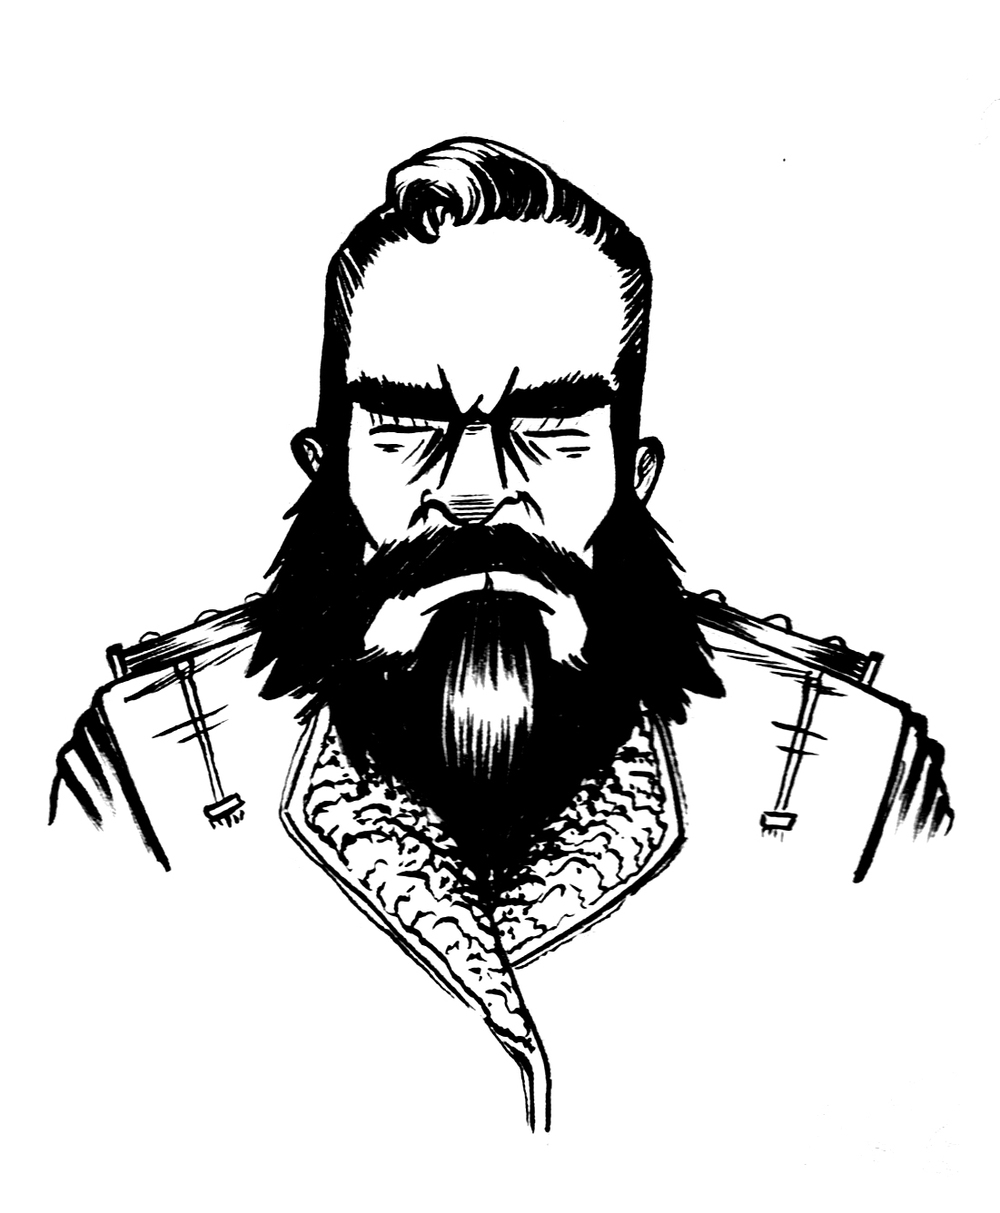 Inktober-30_Beard_clean.jpg